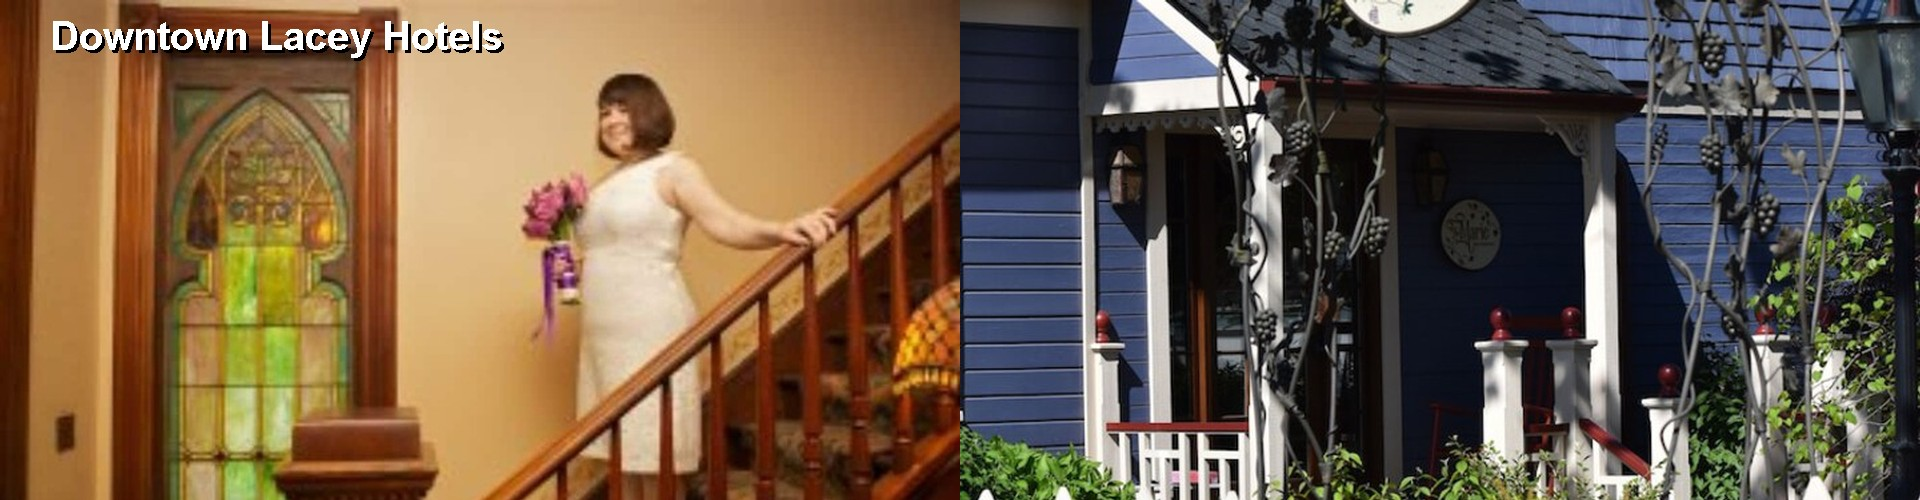 5 Best Hotels near Downtown Lacey